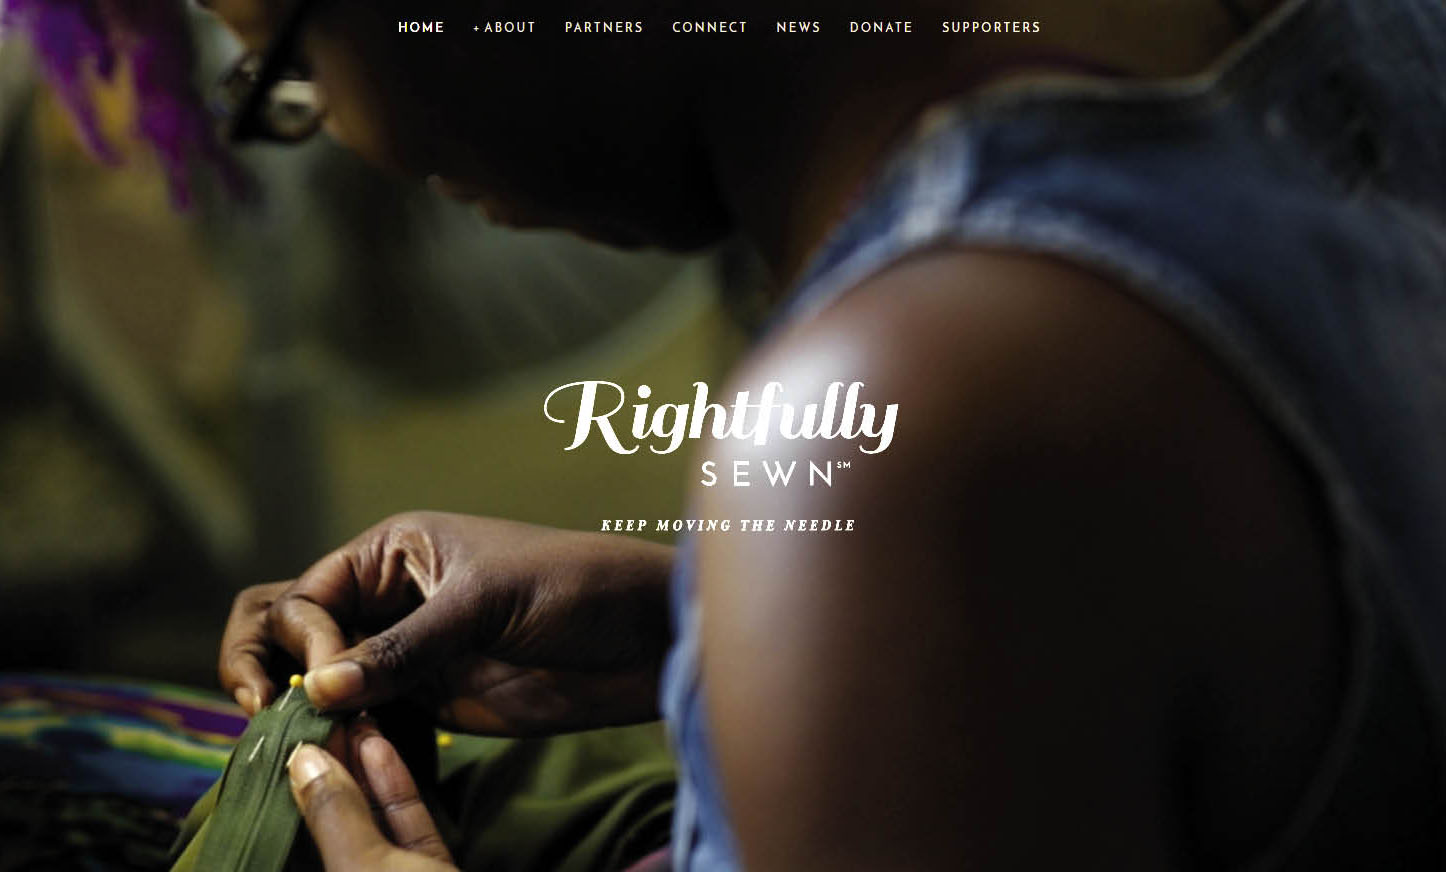 Rightfully Sewn - The ties are hand-crafted in Kansas City, Missouri by Rightfully Sewn, which teaches design, sewing and fabrication, marketing, business, and entrepreneurial skills to at-risk women and men.